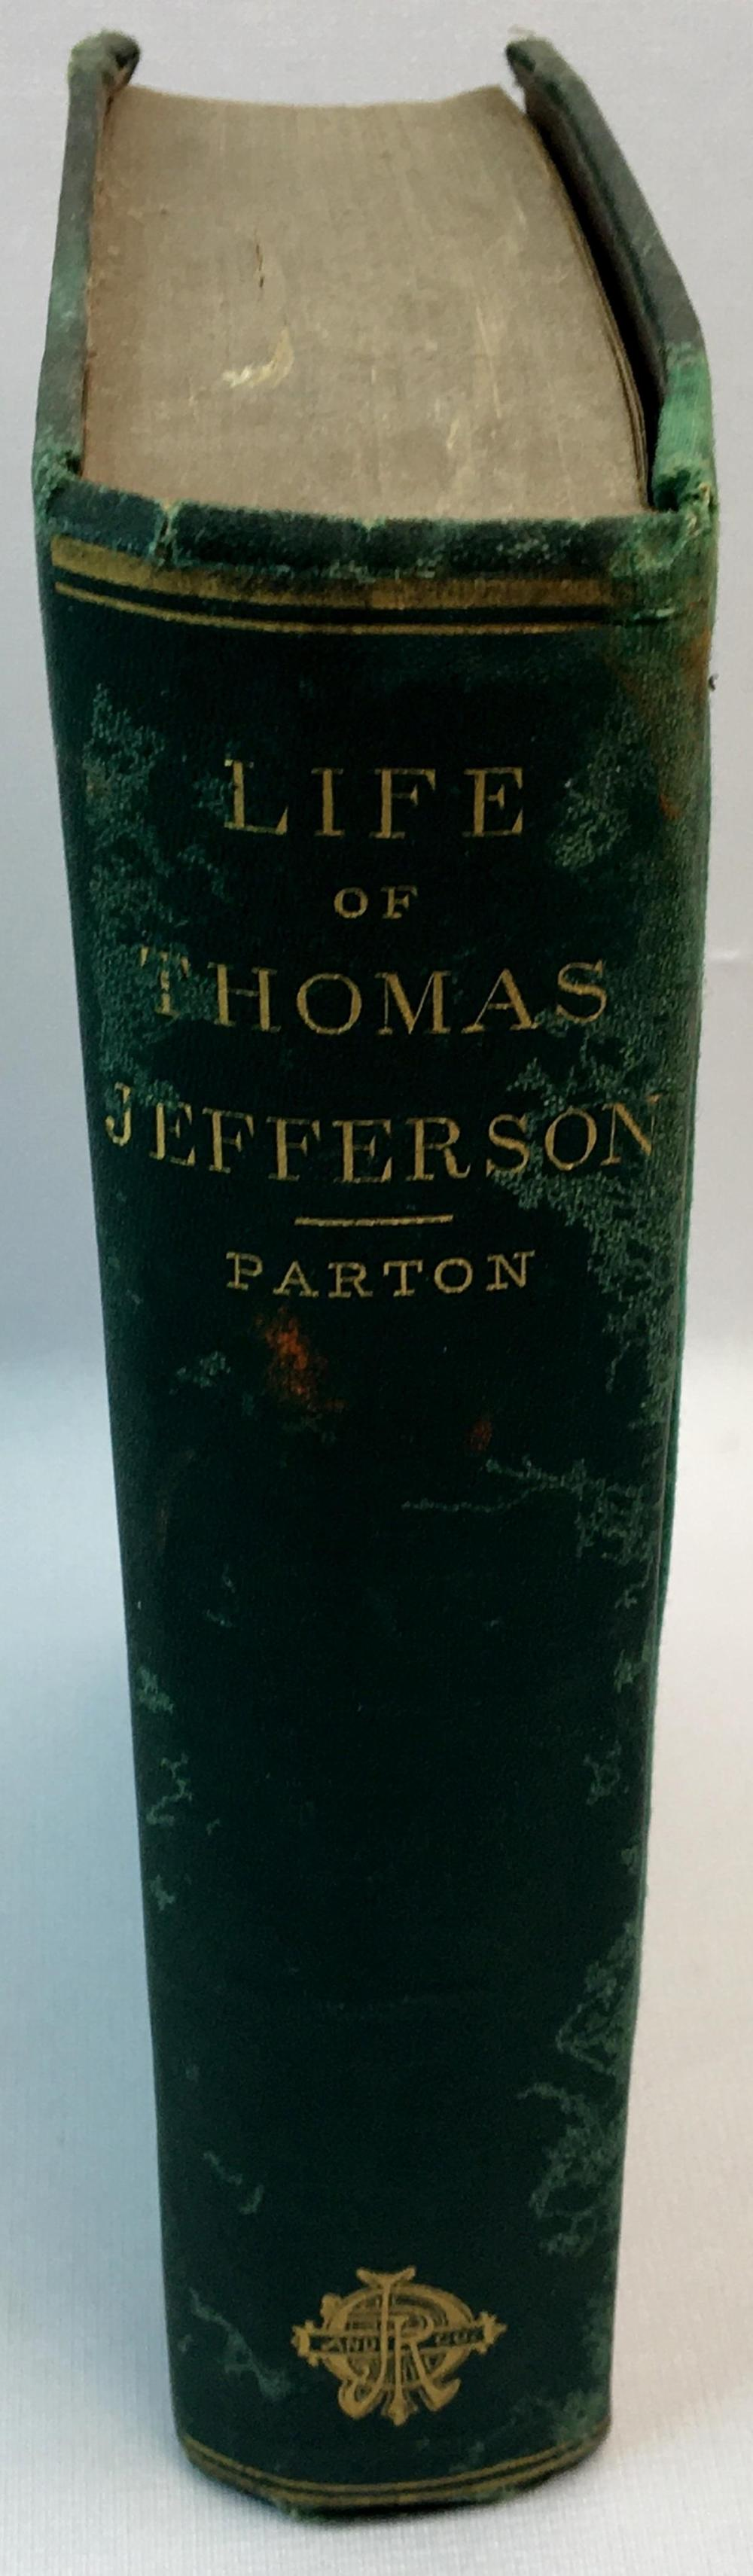 1874 Life of Thomas Jefferson, Third President of the United States by James Parton FIRST EDITION